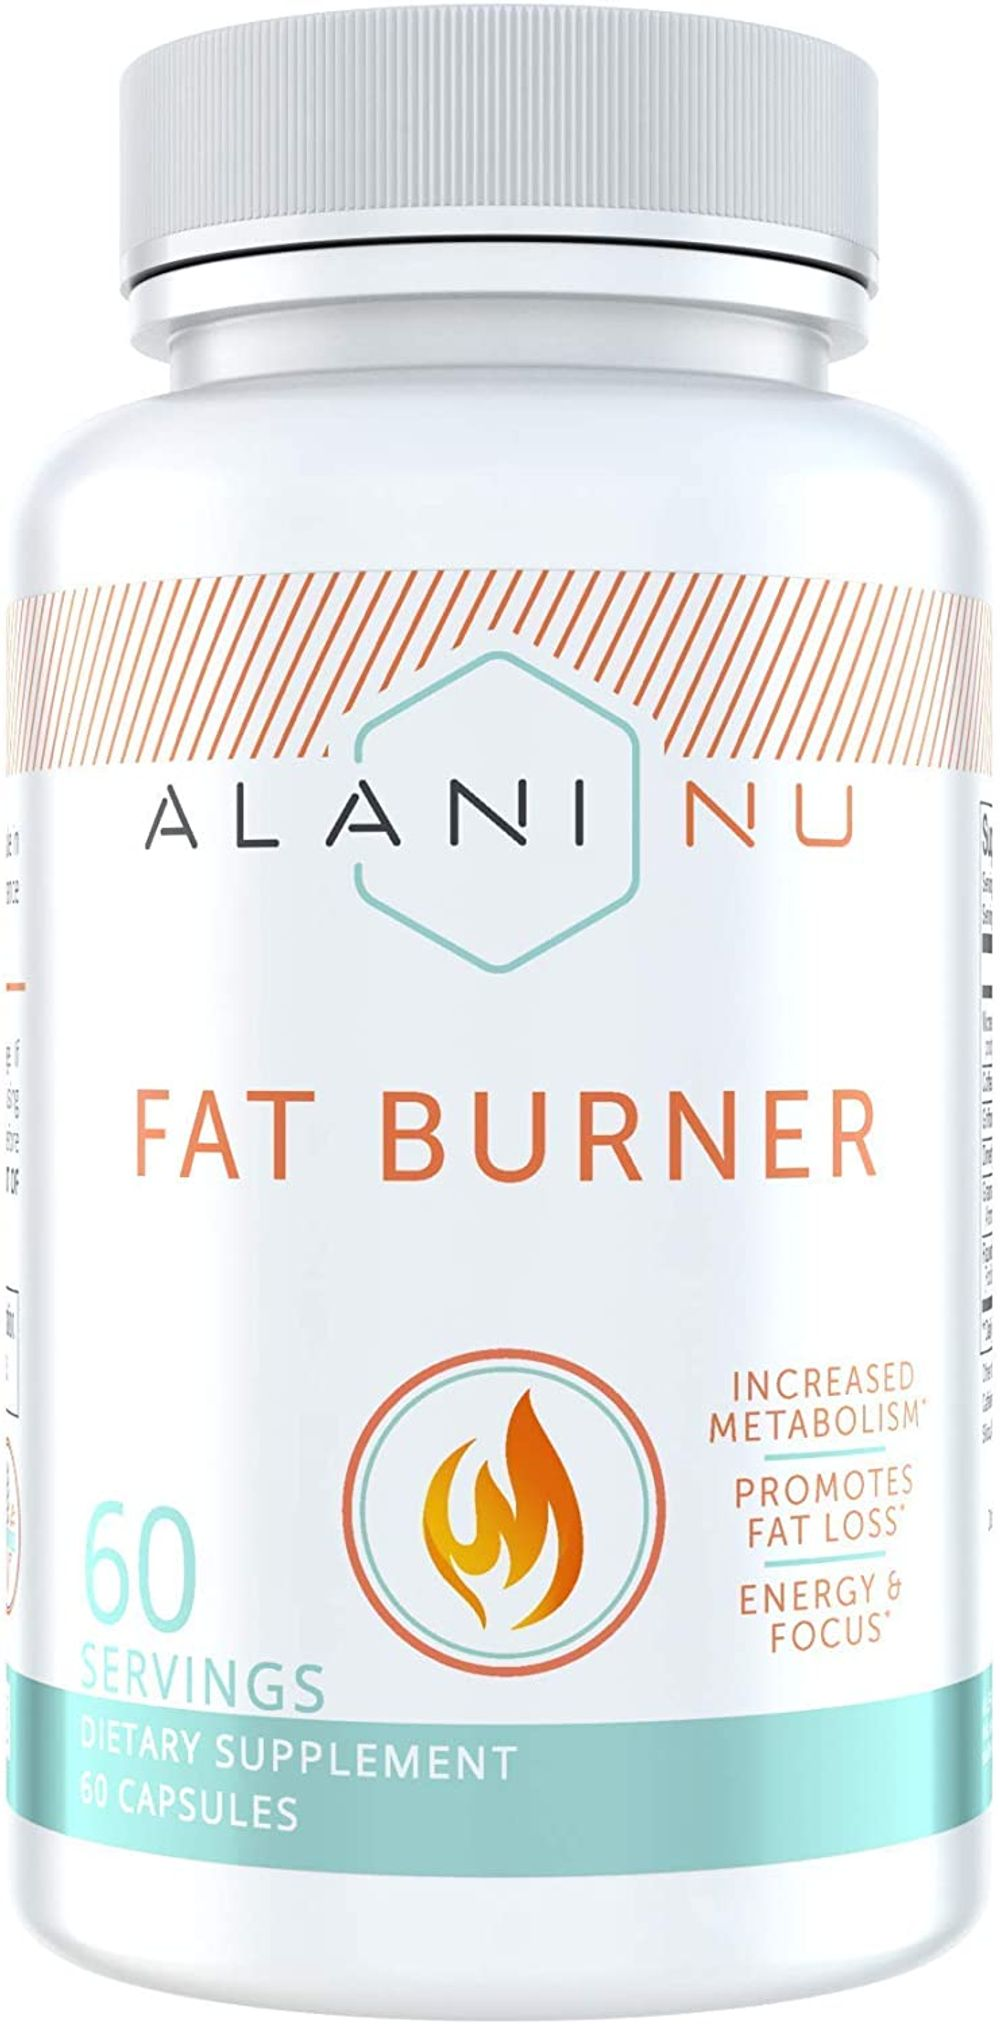 Alani Nu Premium Fat Burner Supplement, Metabolism Booster and Appetite Suppressant, 60 Day Supply, Packaging May Vary